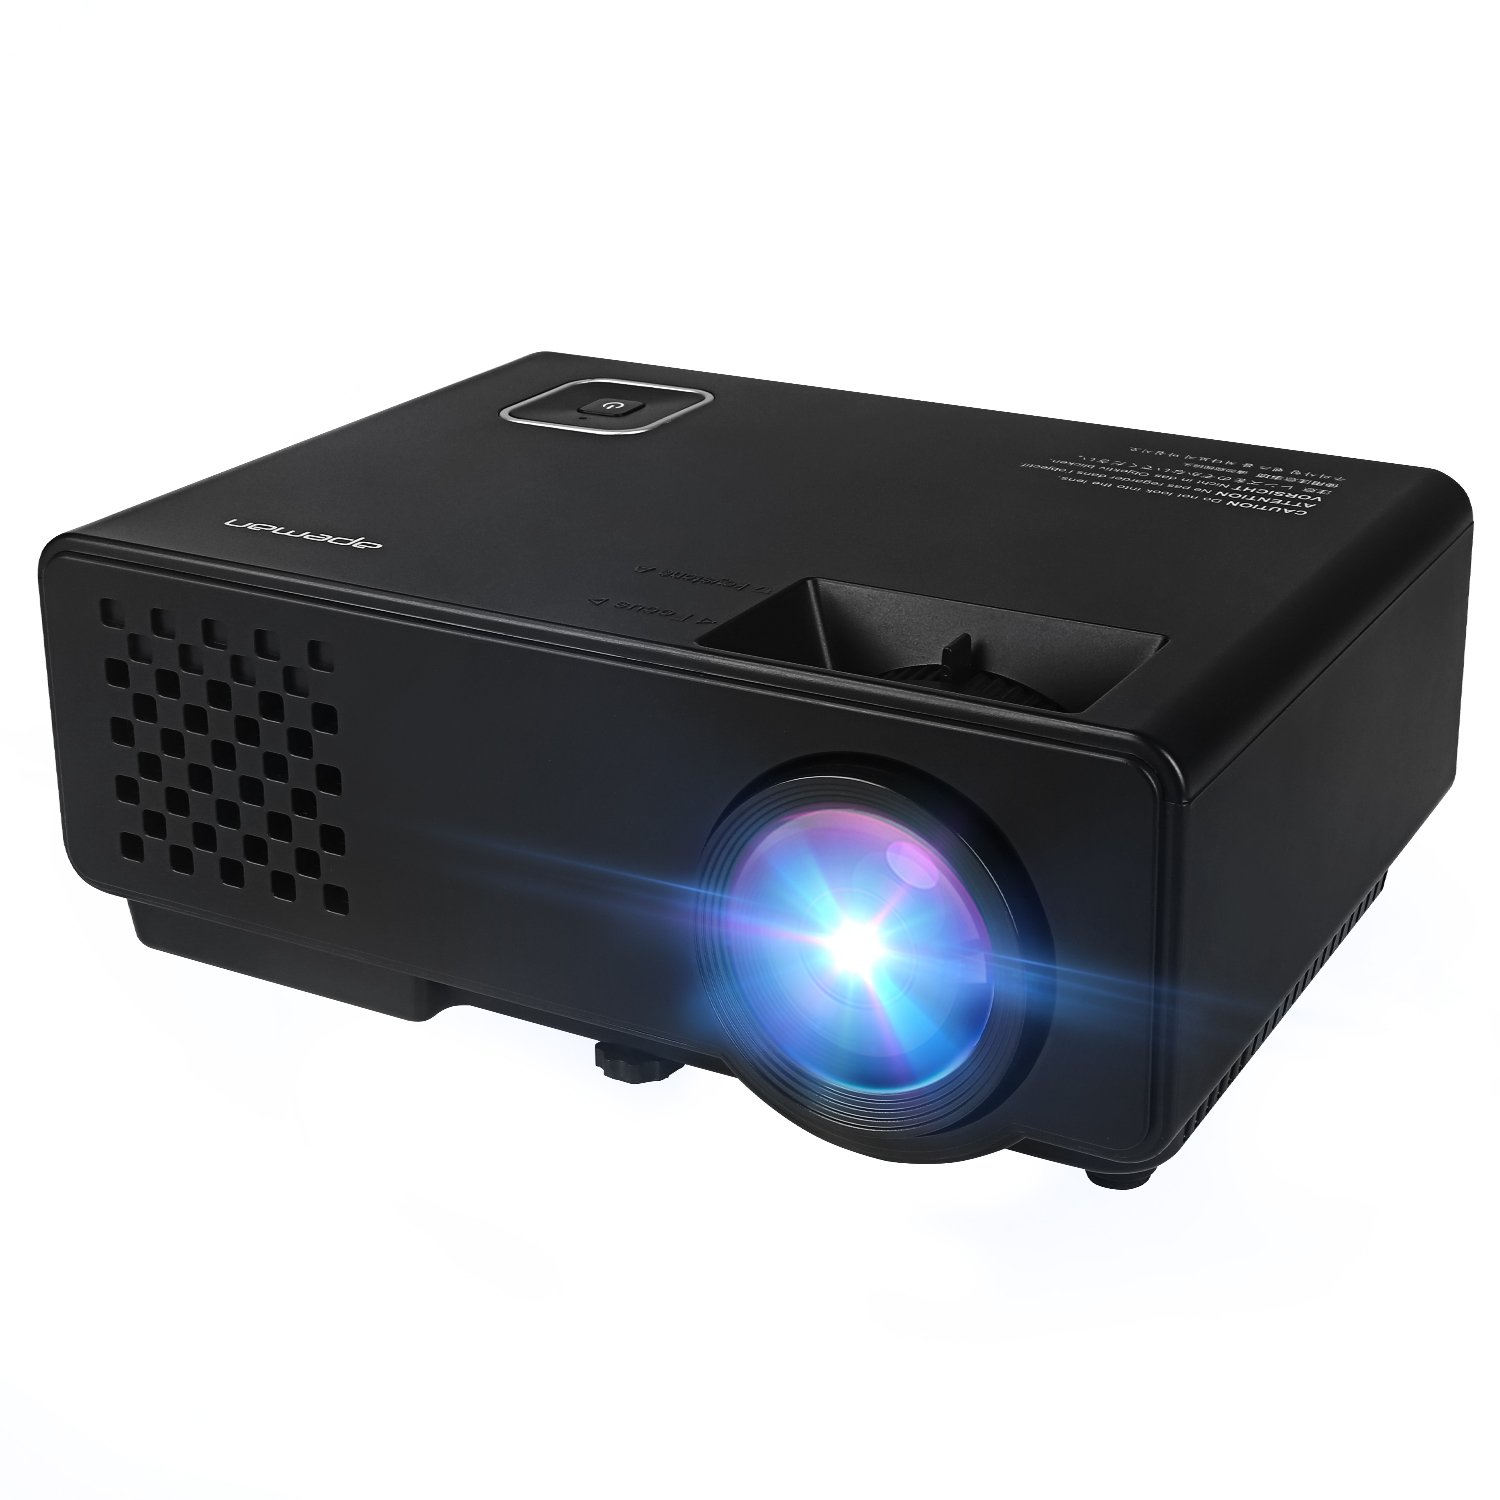 APEMAN Video Projector LED Mini Portable Projector 1000 Lumens Home Theater Cinema Experience Perfect for Family Gathering Video Games Movie Night Support 1080P with HDMI/USB/VGA/AV/ATV Input apeman LC150